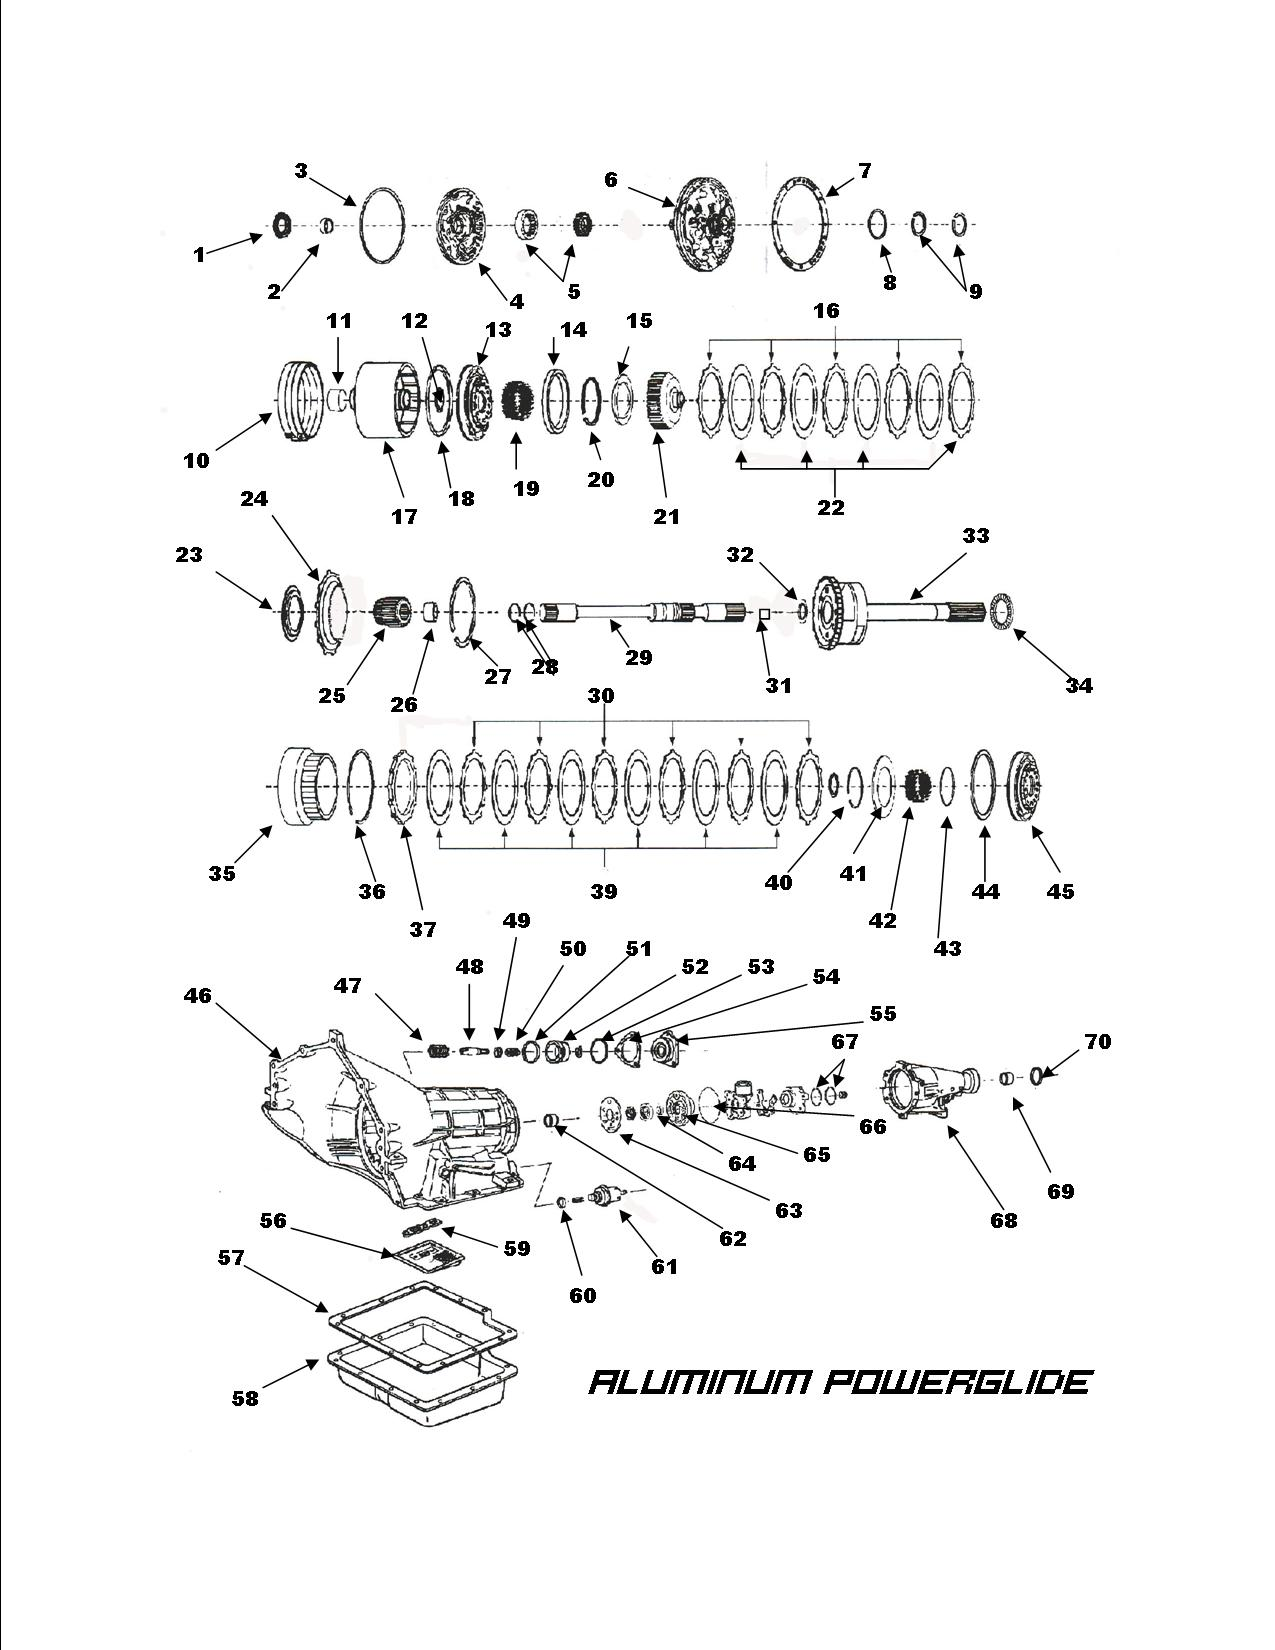 power glide transmission exploded view